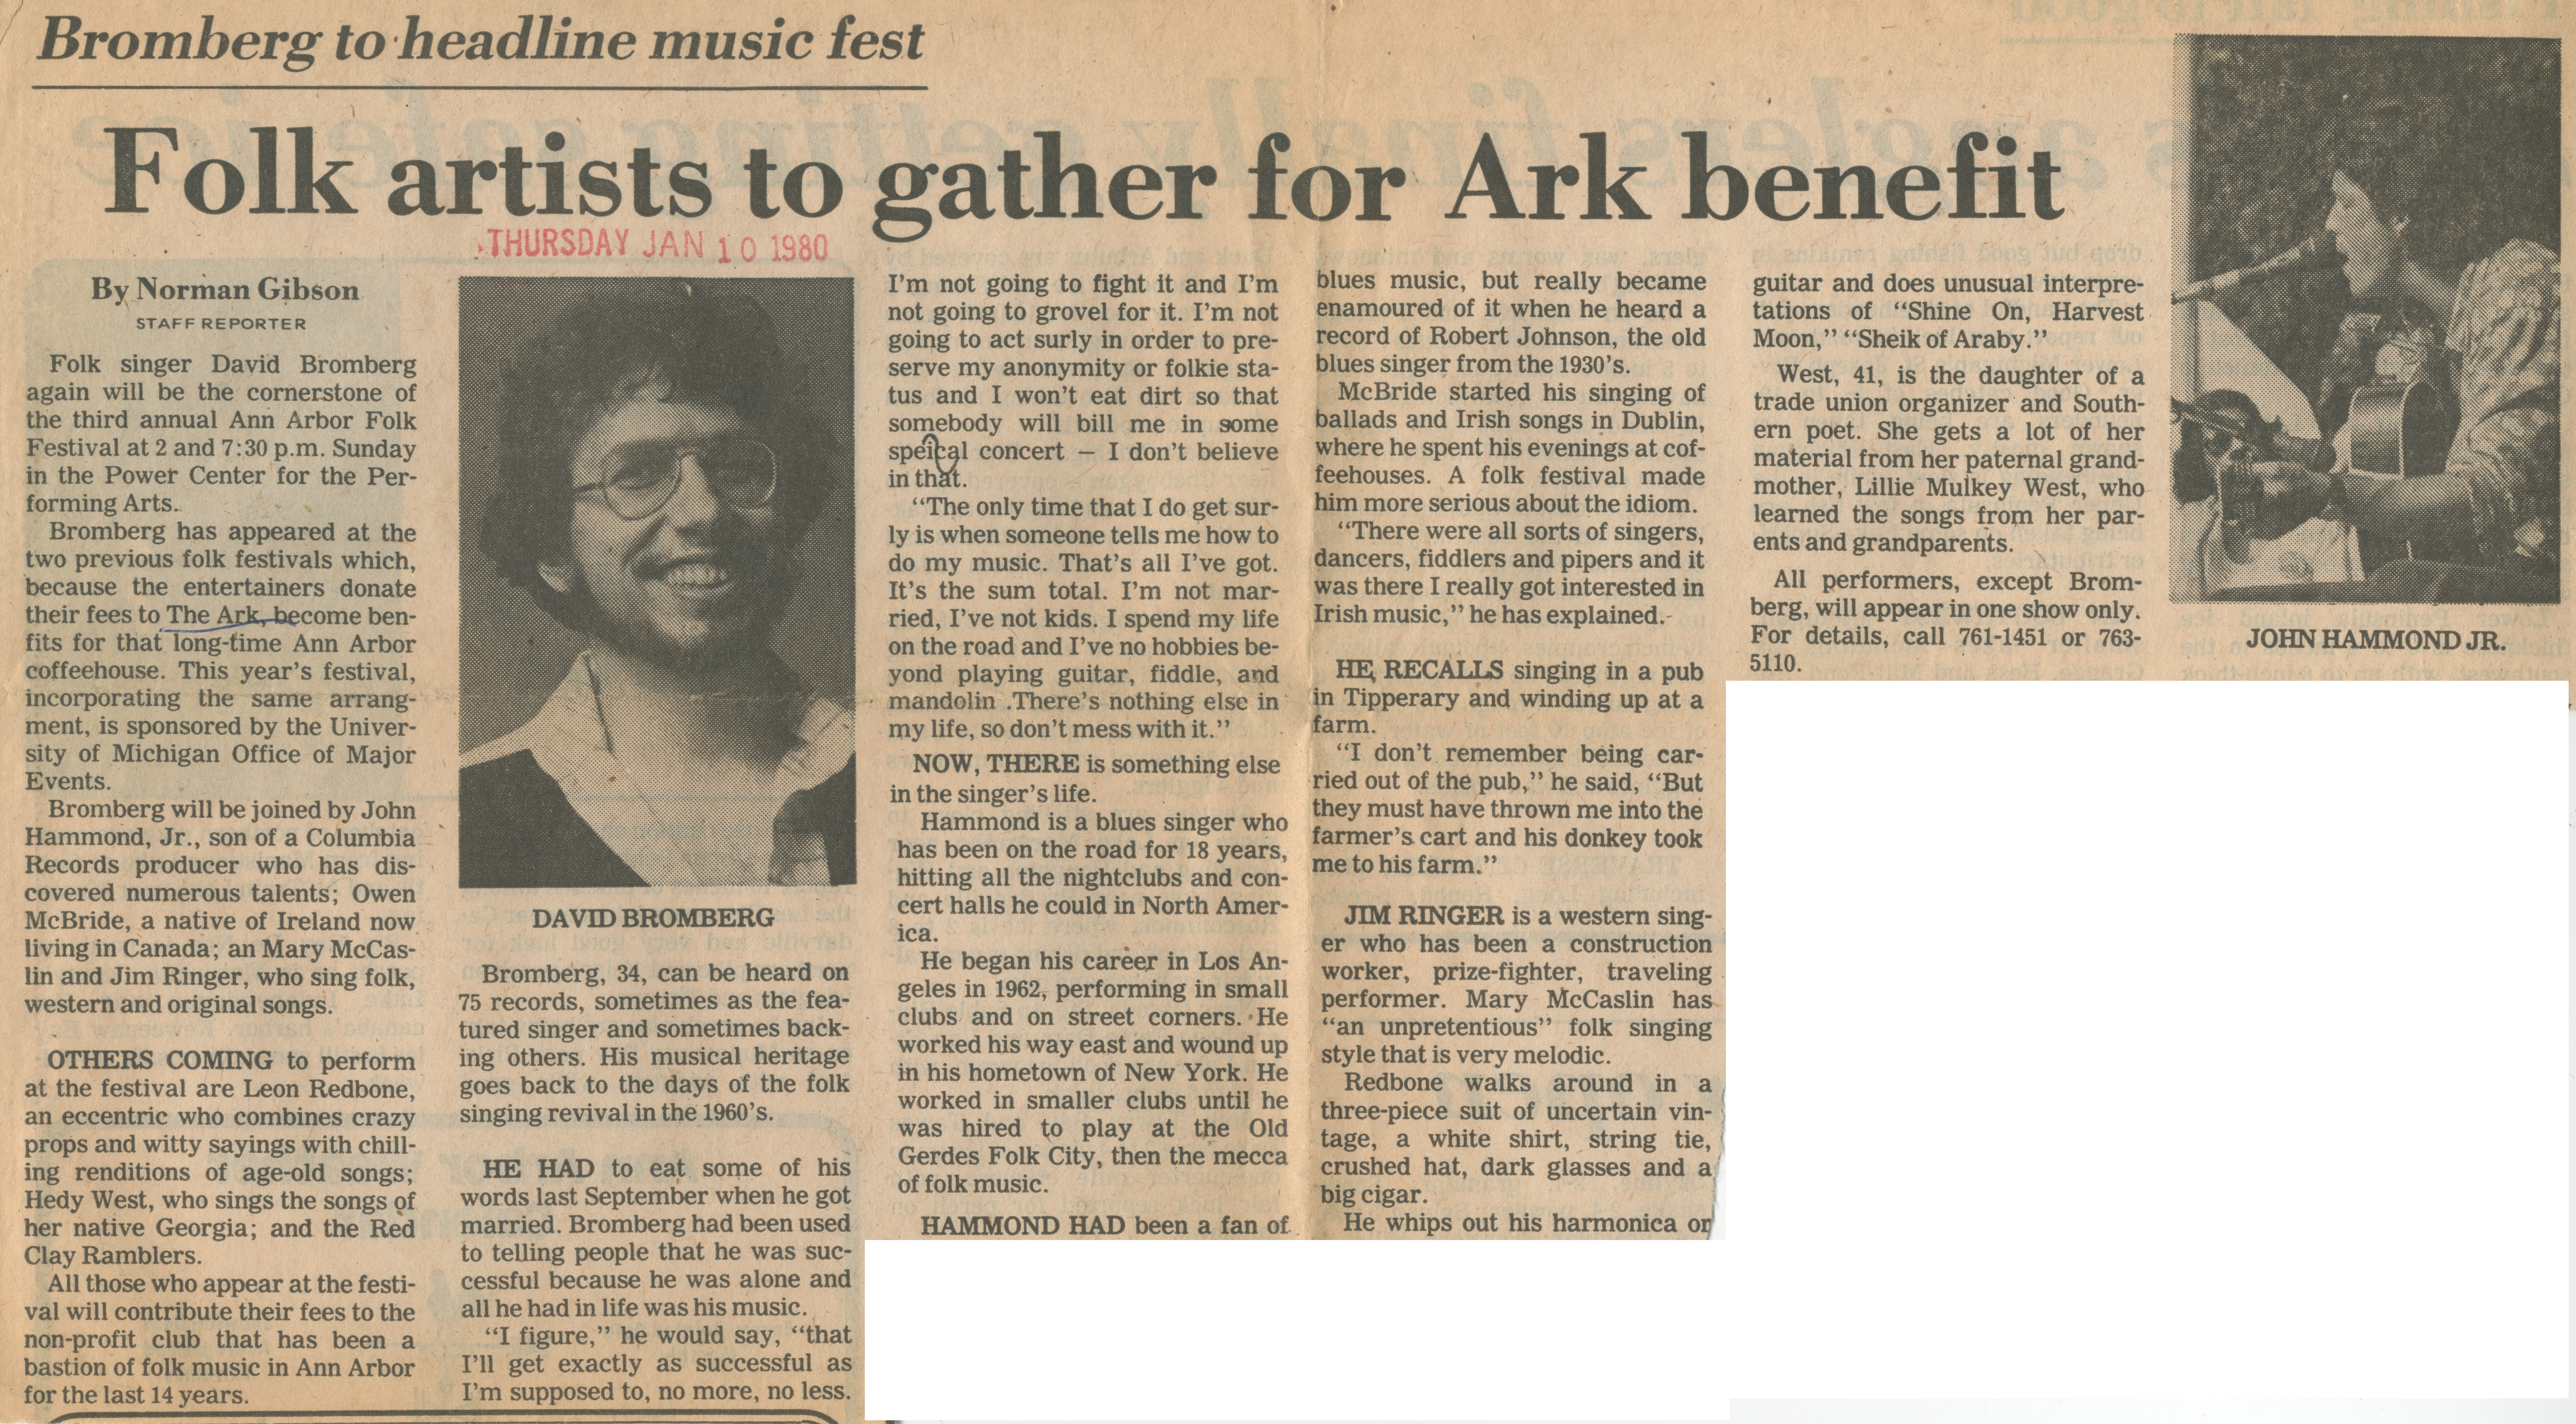 Bromberg To Headline Music Fest Folk Artists To Gather For Ark Benefit image